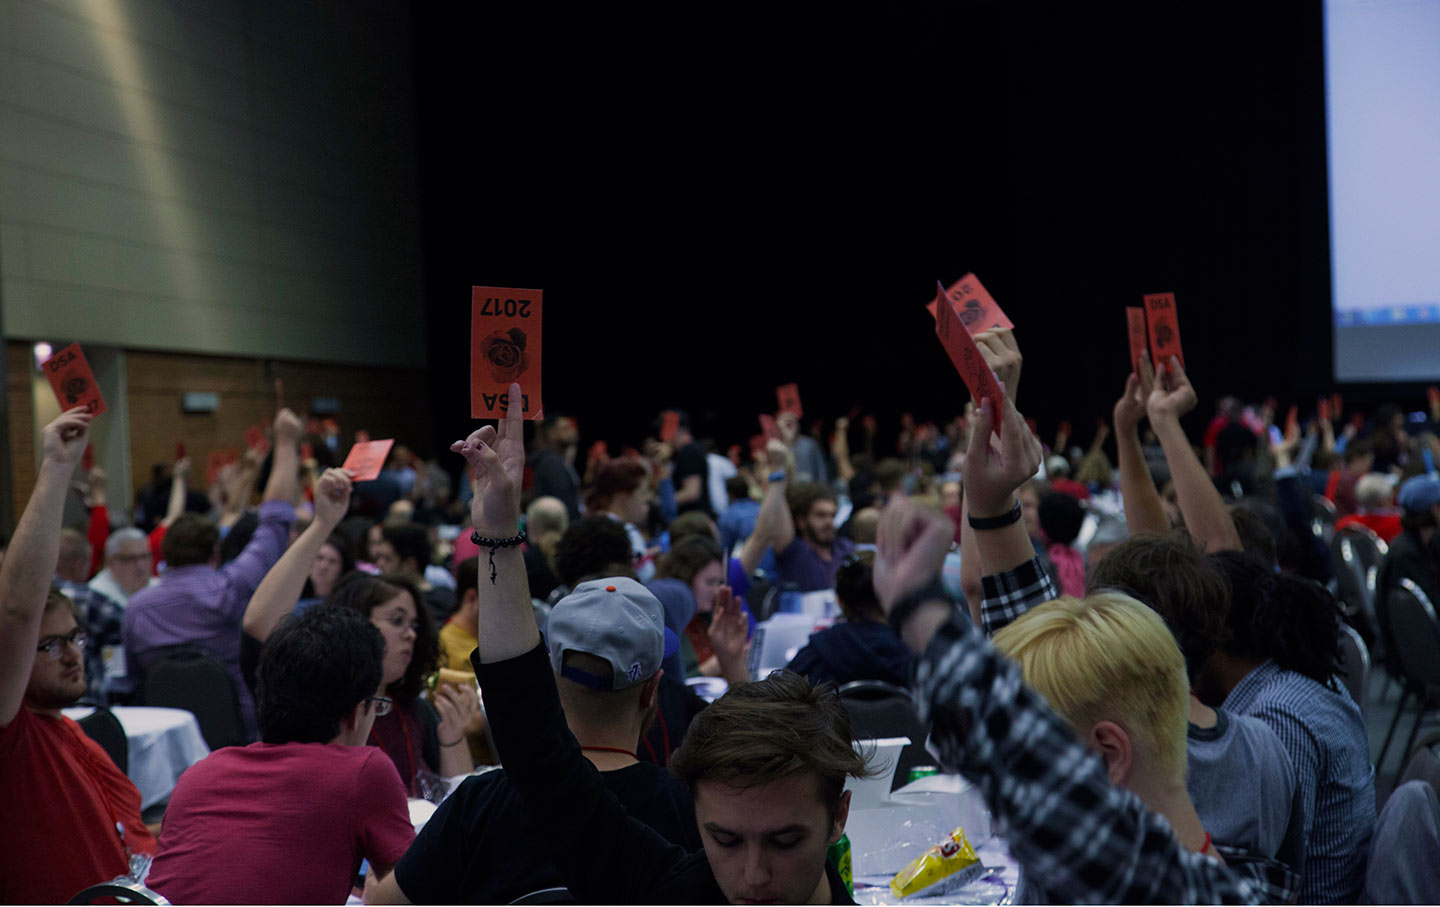 DSA Convention in Chicago